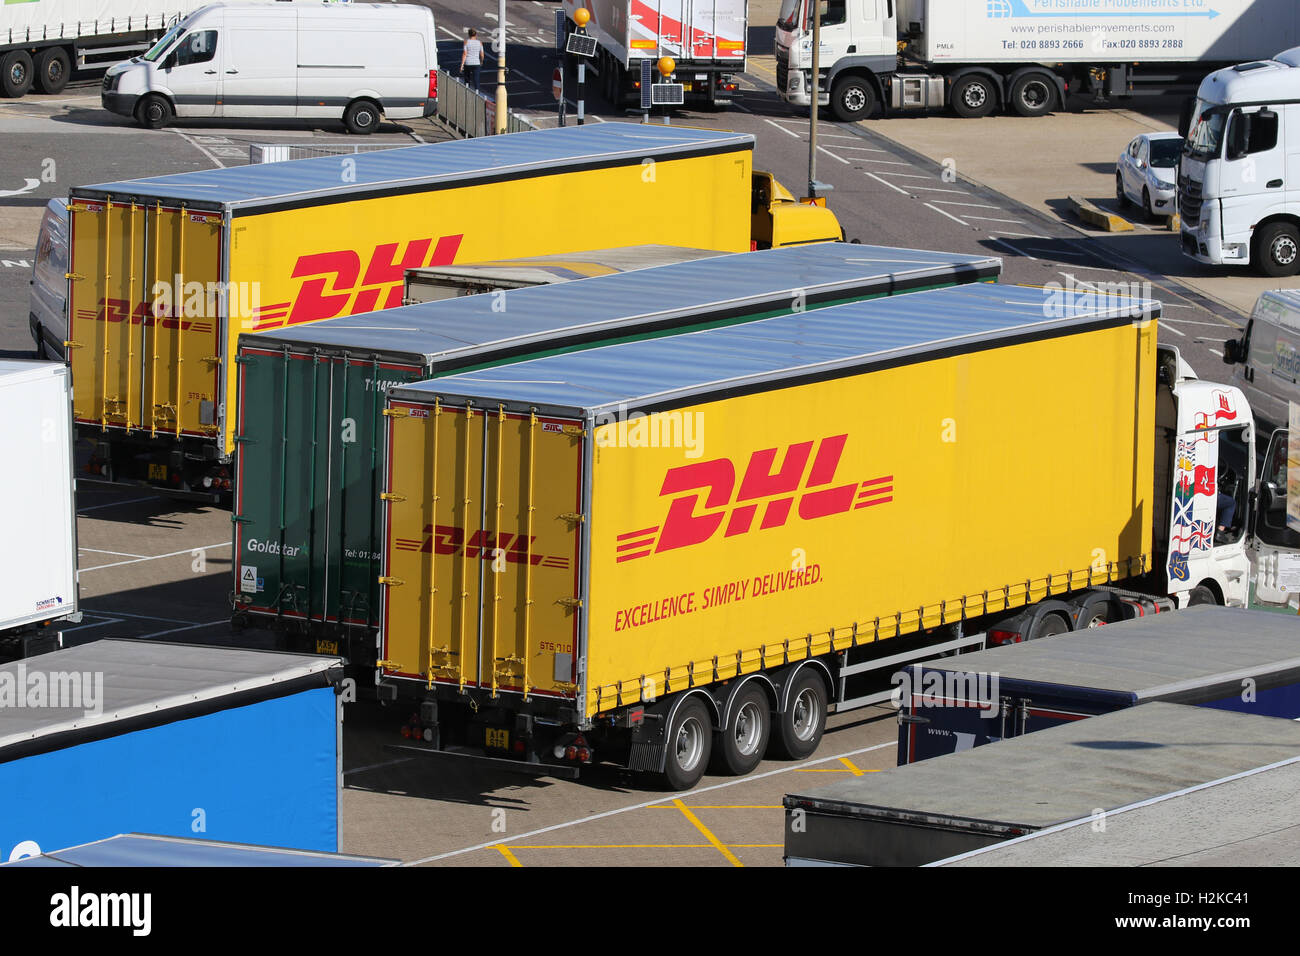 LONDON HEATHROW CARGO TERMINAL - Stock Image